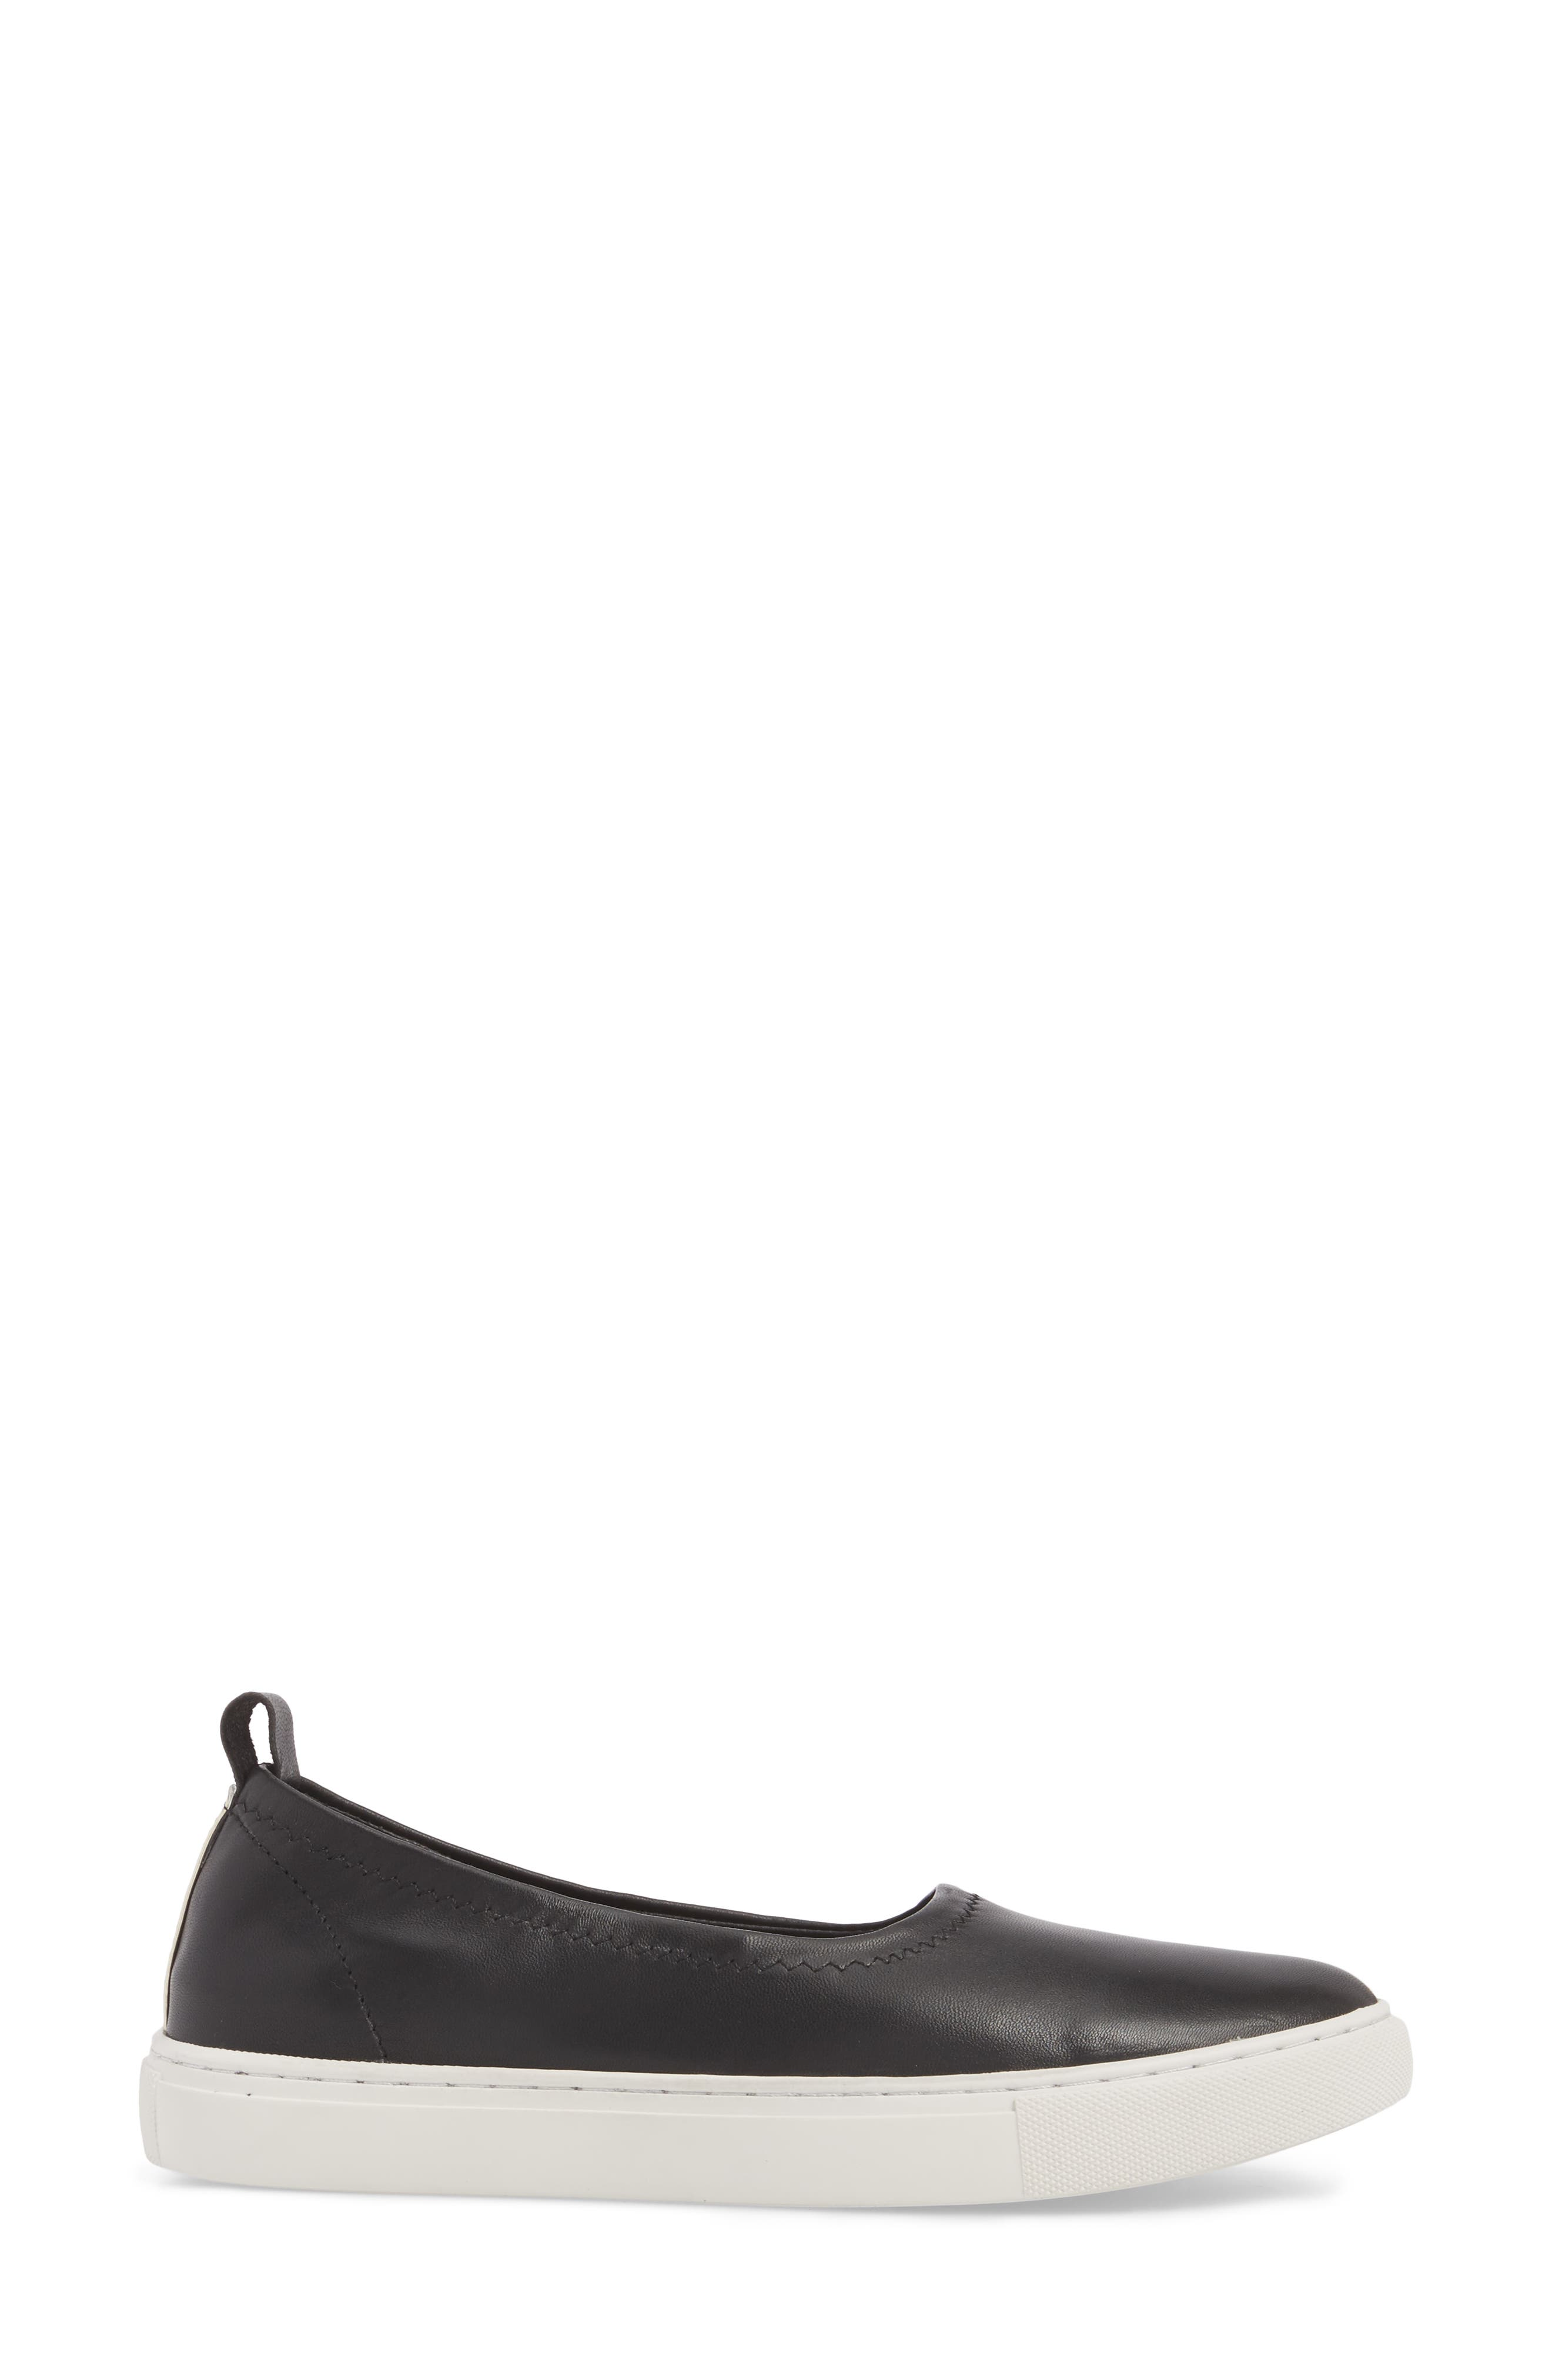 KENNETH COLE NEW YORK,                             Kam Techni-Cole Ballet Flat,                             Alternate thumbnail 3, color,                             001